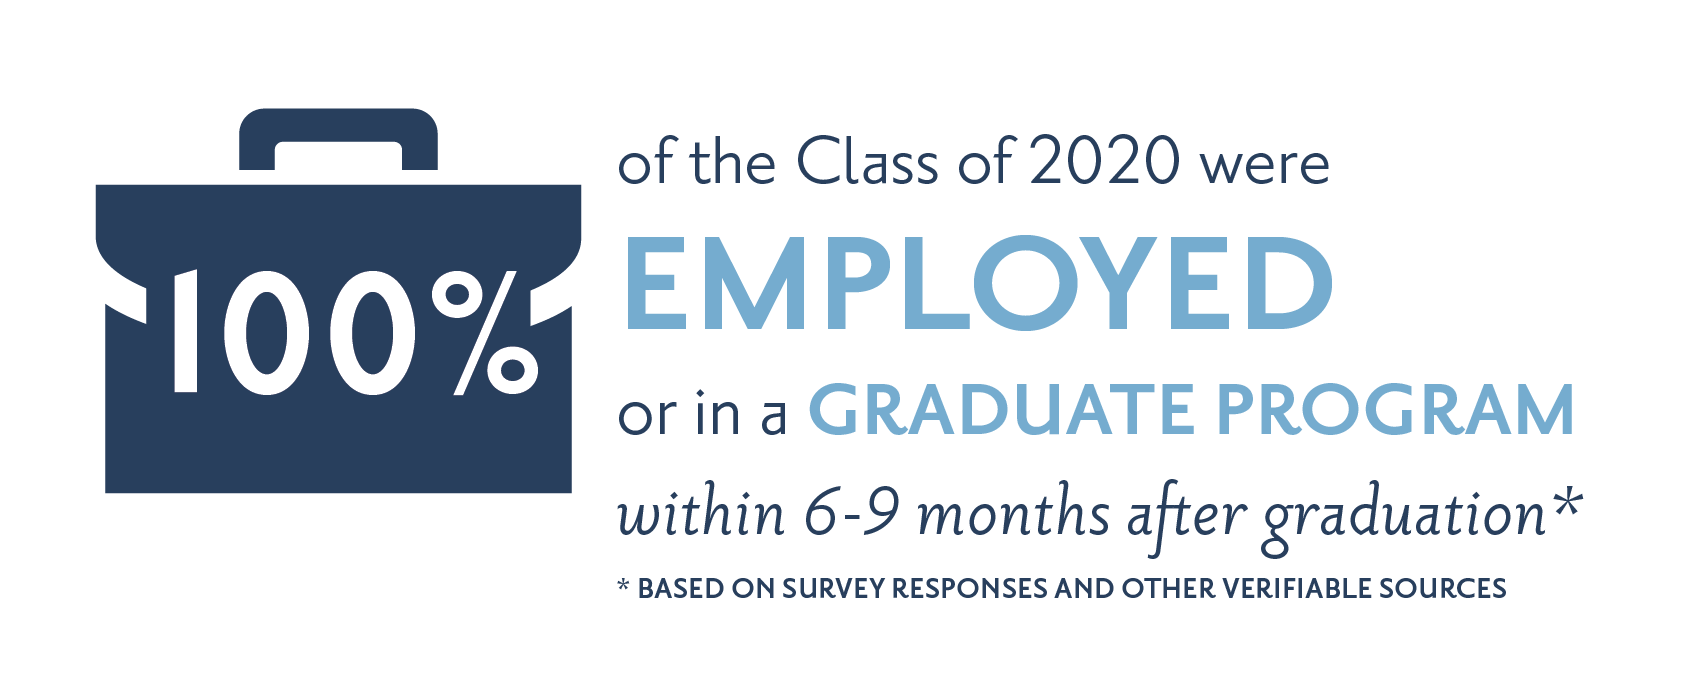 97% of the Class of 2017 were employed or in a graduate program within 6-9 months after graduation.